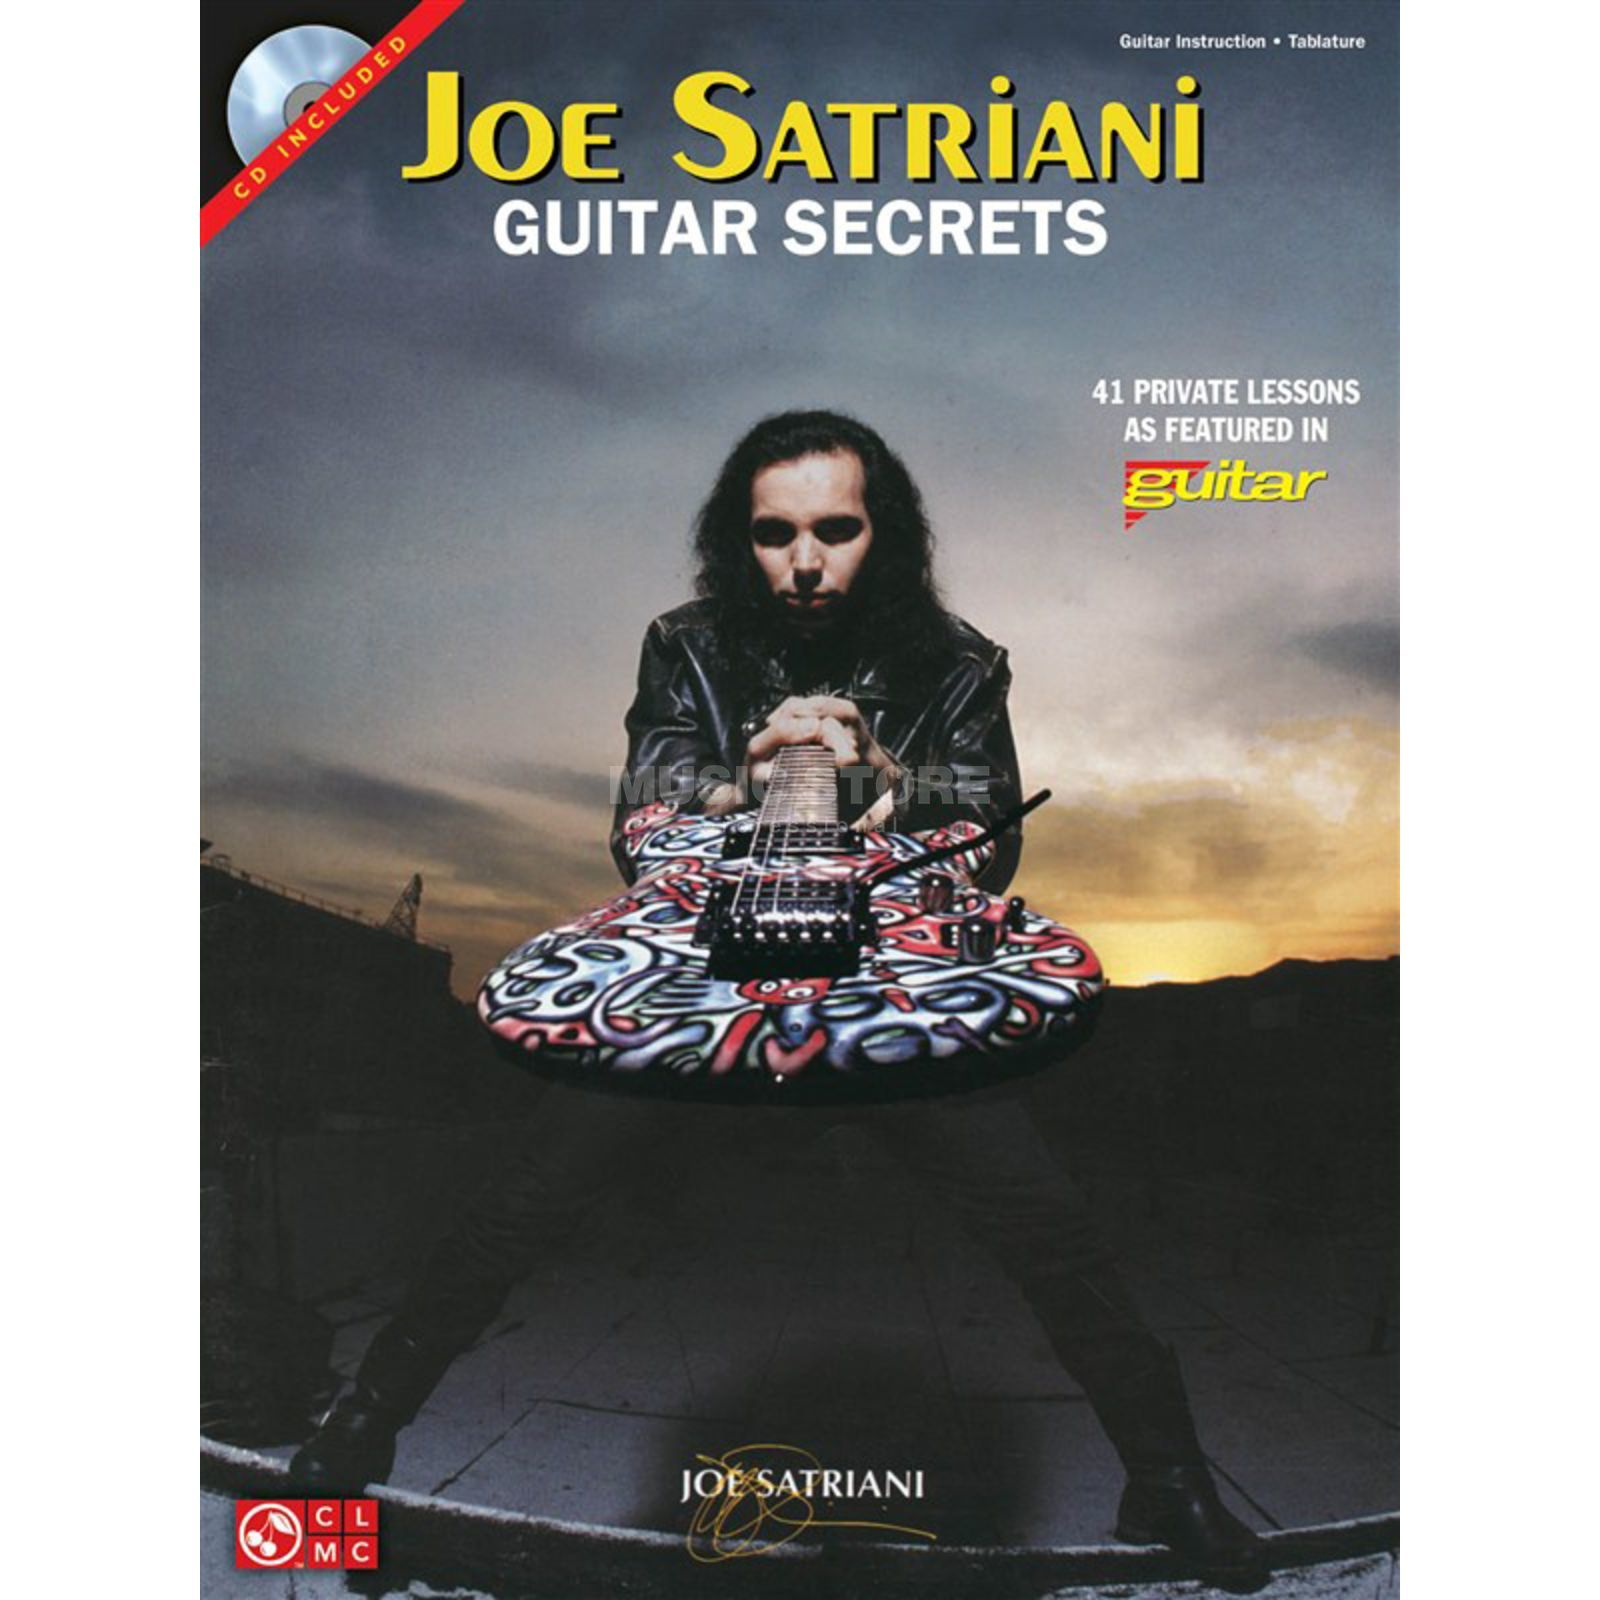 Hal Leonard Joe Satriani: Guitar Secrets (CD Edition) Produktbillede